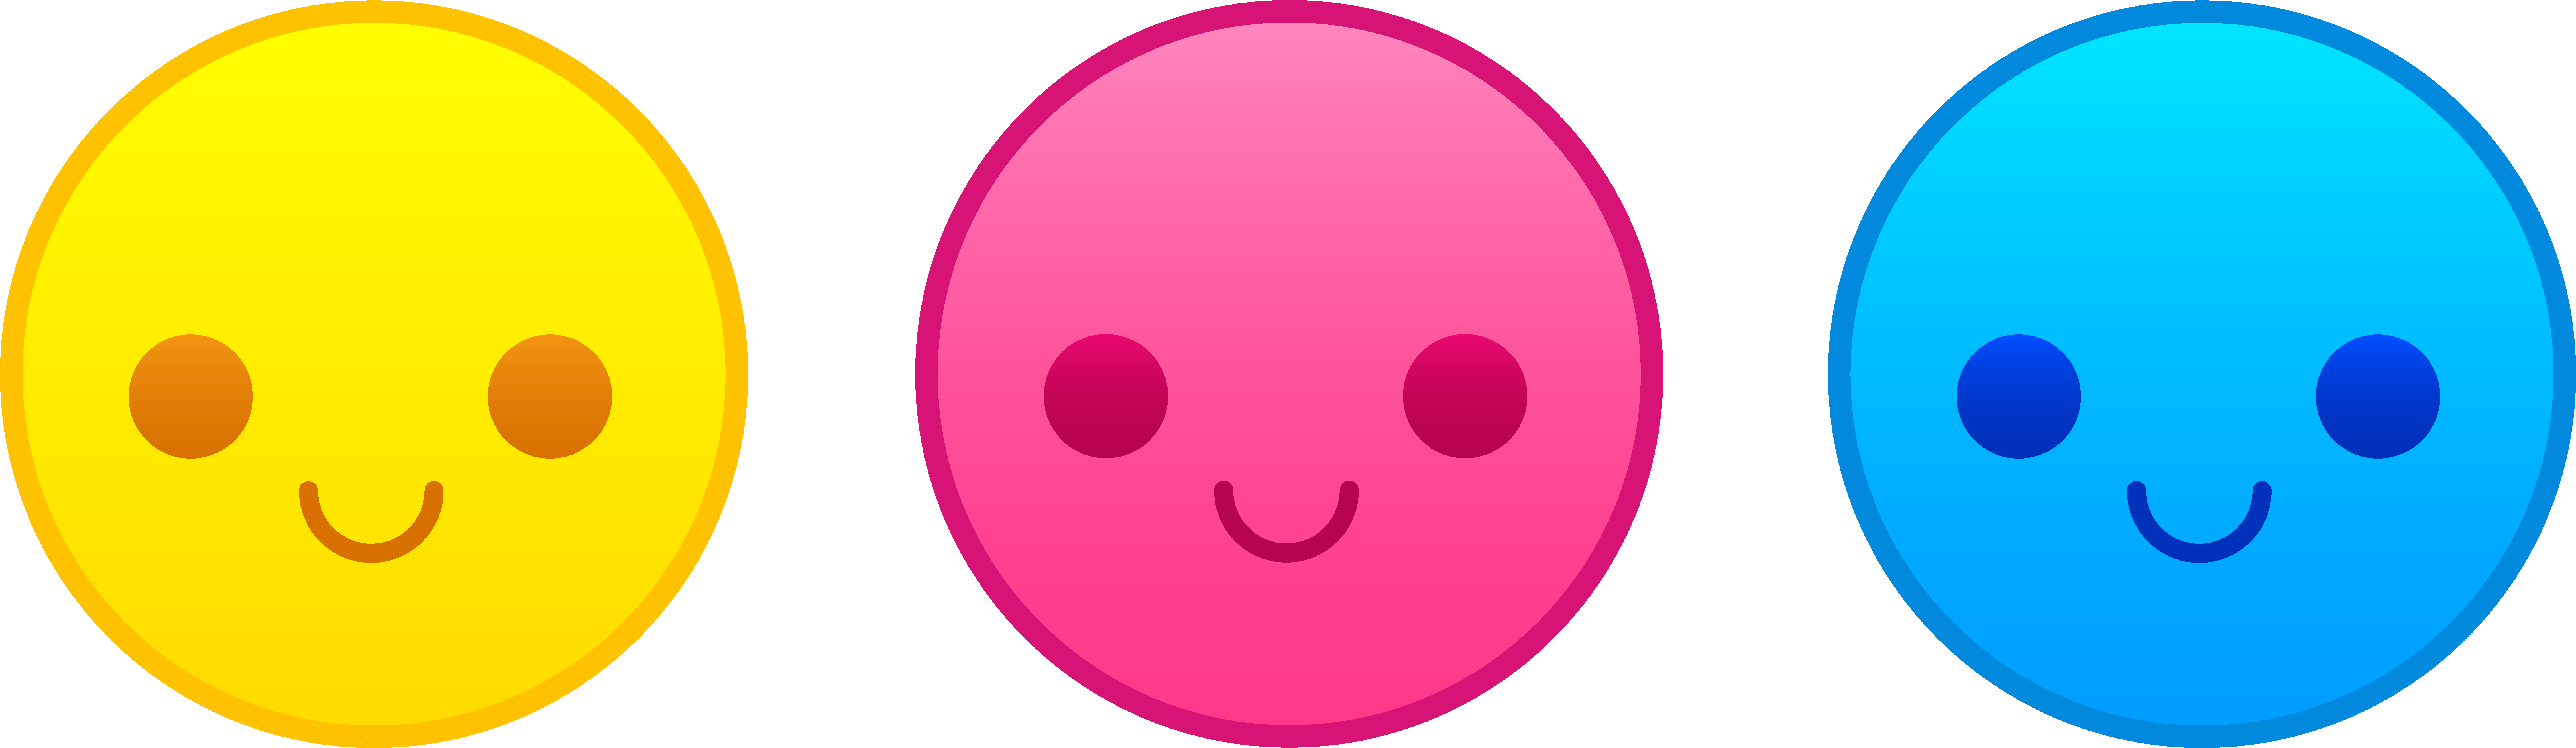 9039x2626 Smiley Face Clip Art Emotions Free Clipart Images 9